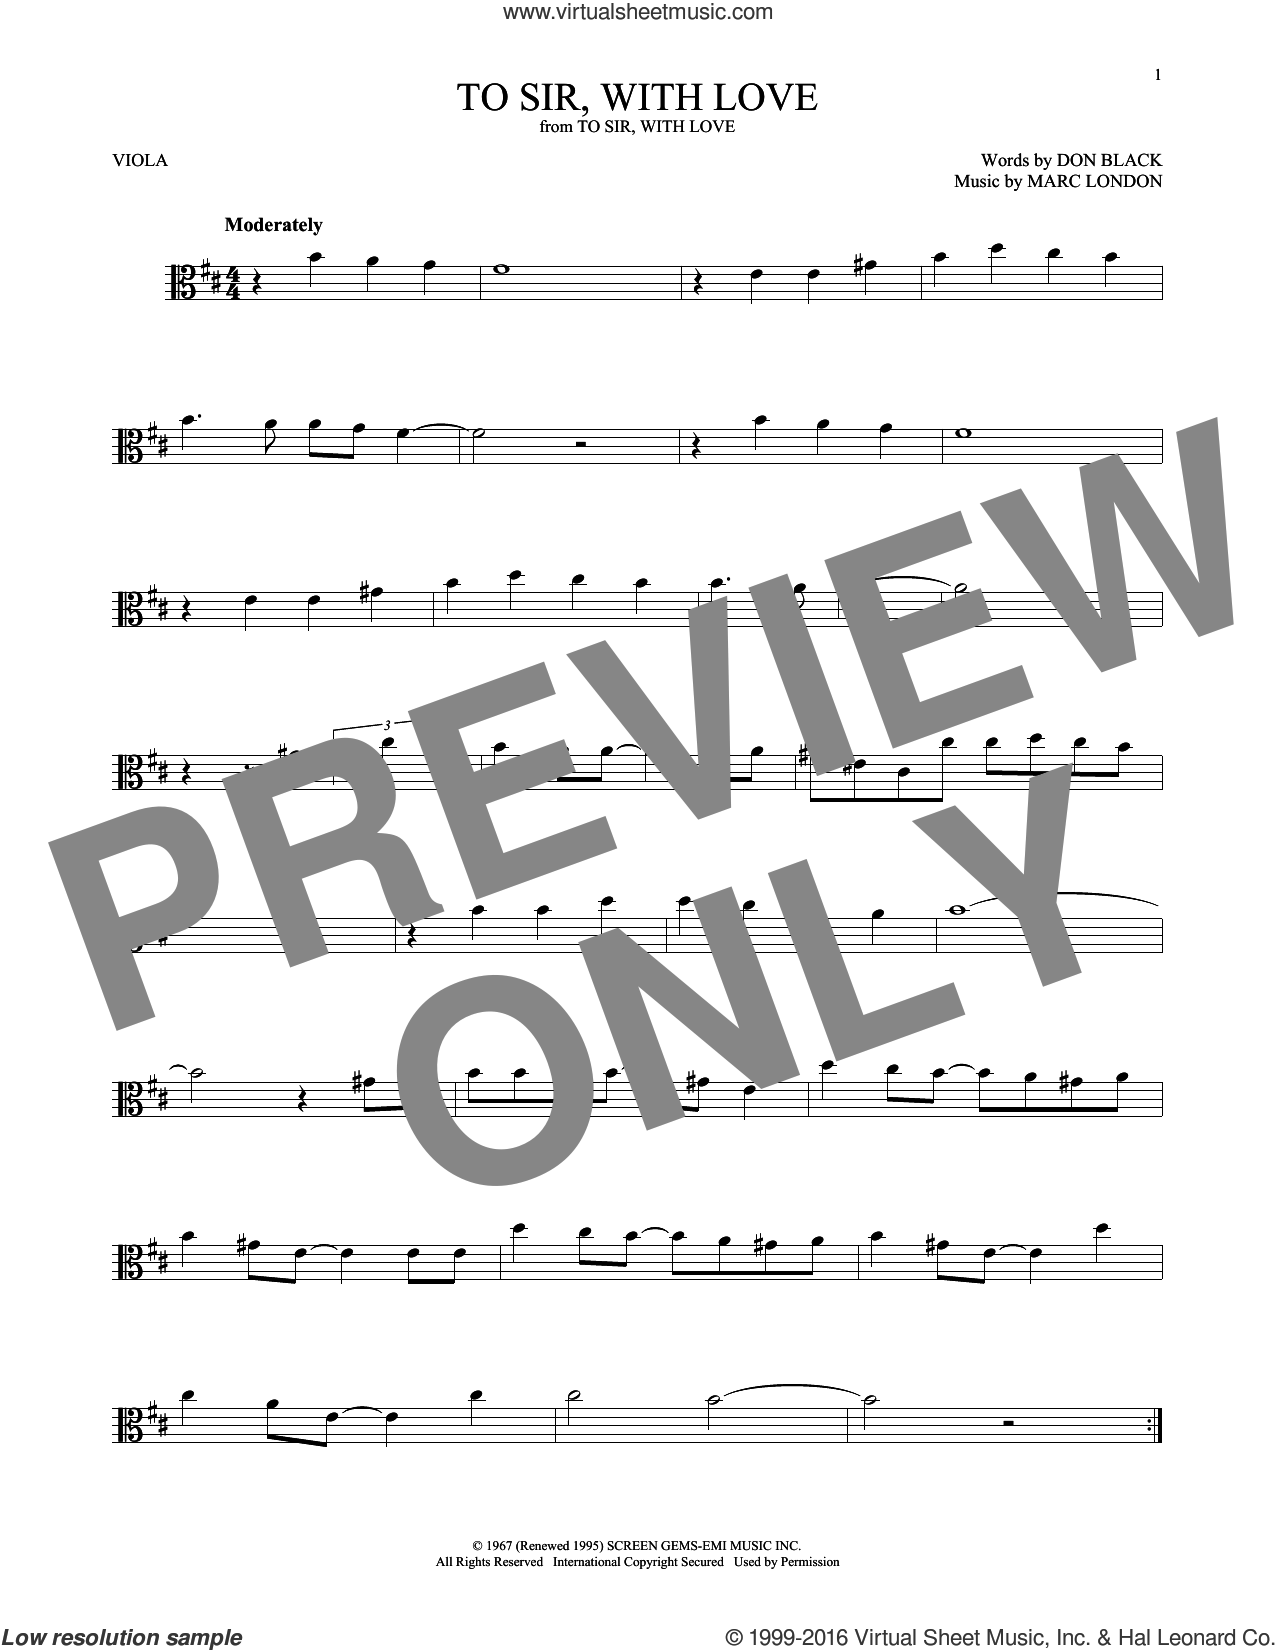 To Sir, With Love sheet music for viola solo by Marc London